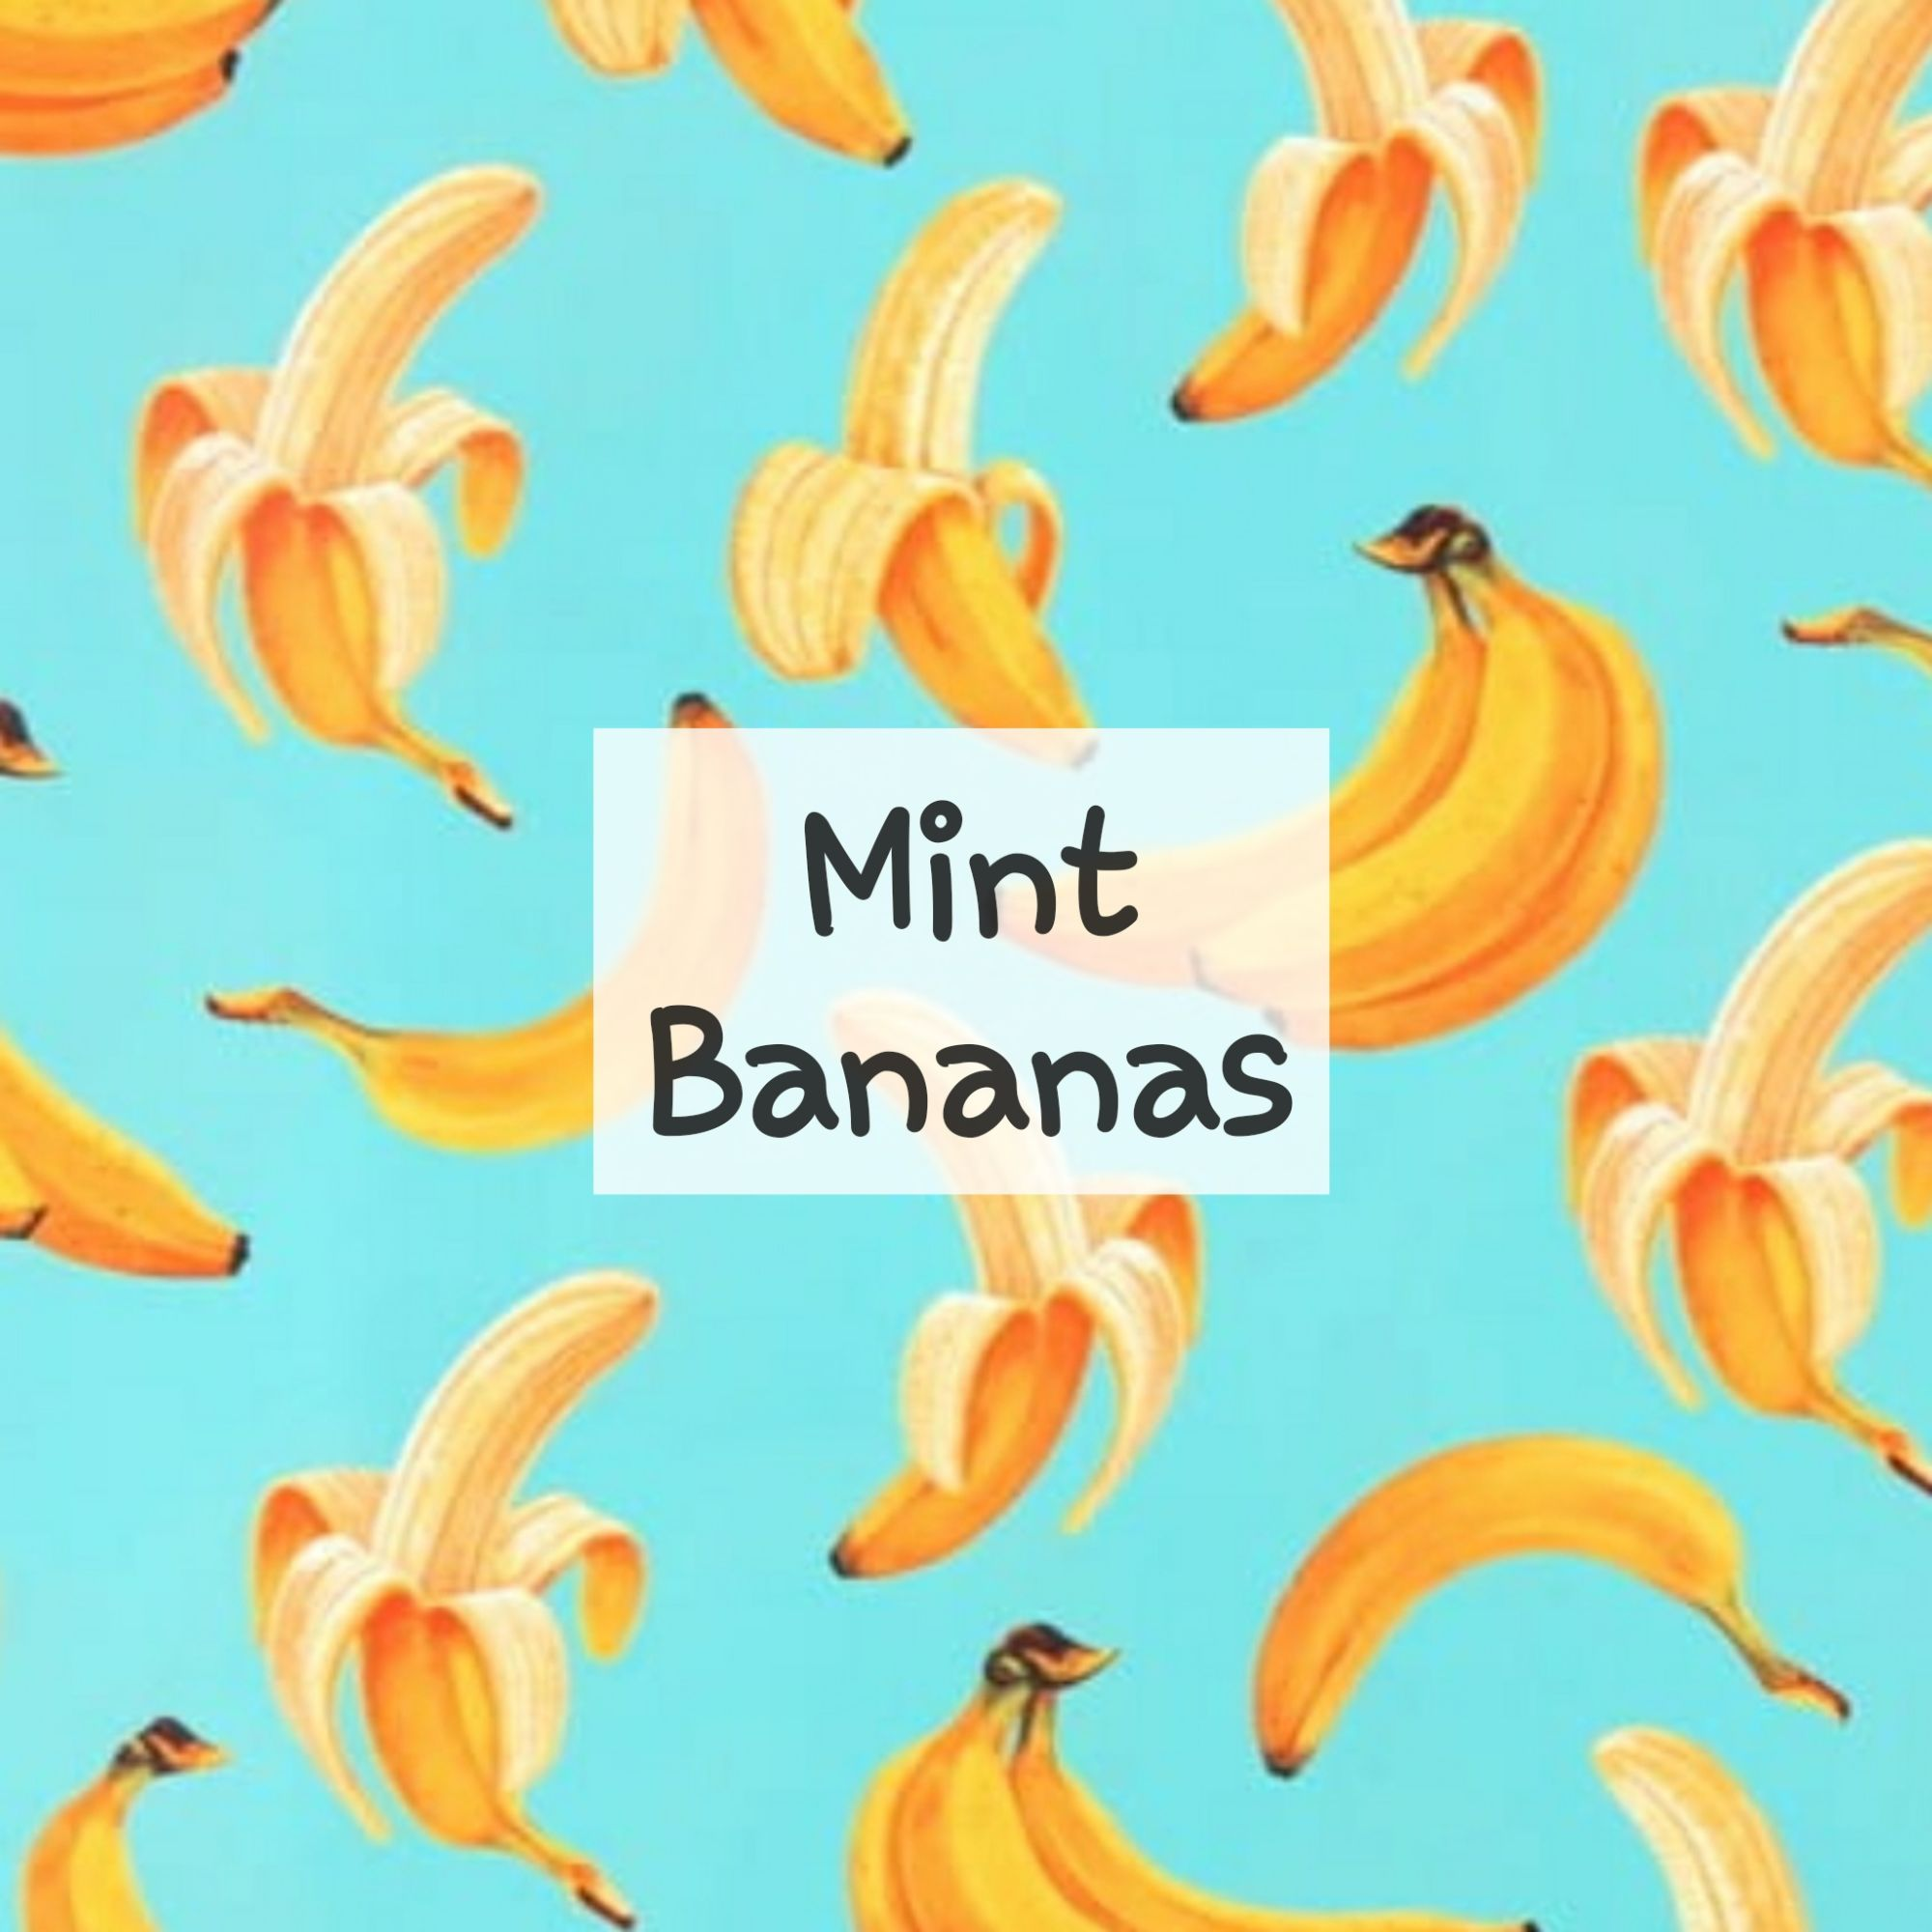 Mint Bananas